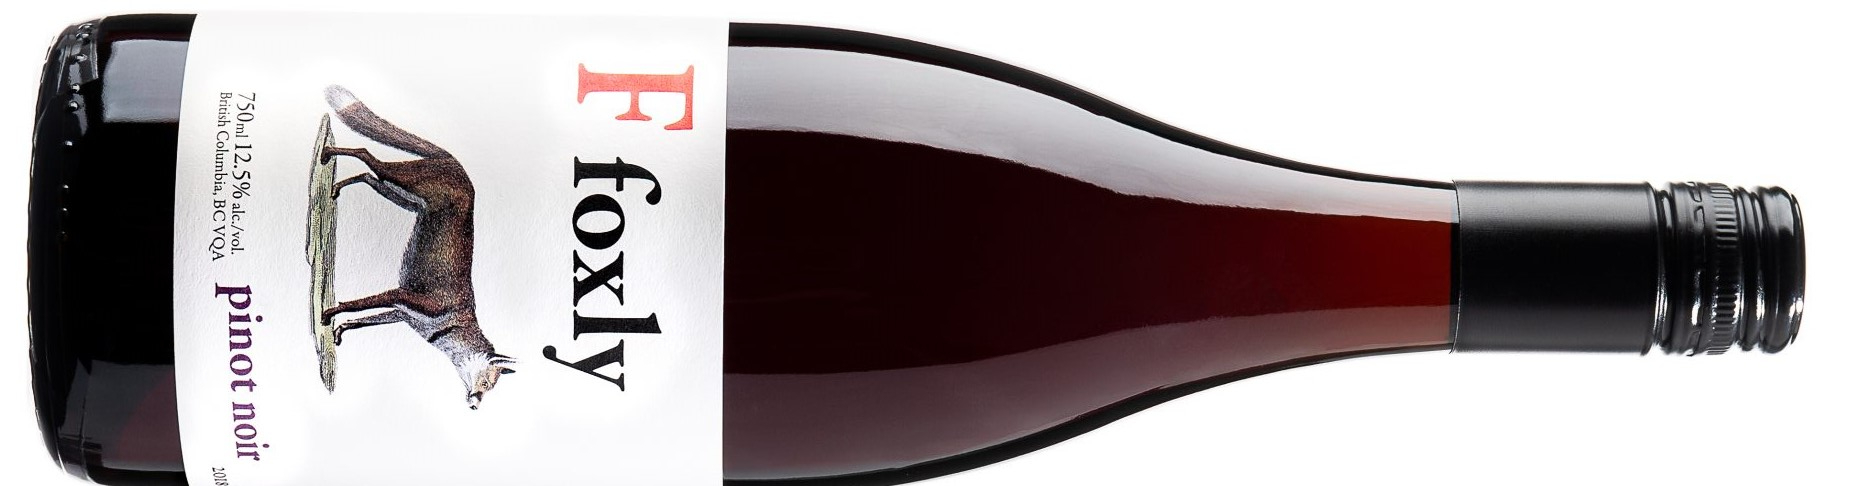 Foxly Pinot Noir 2018